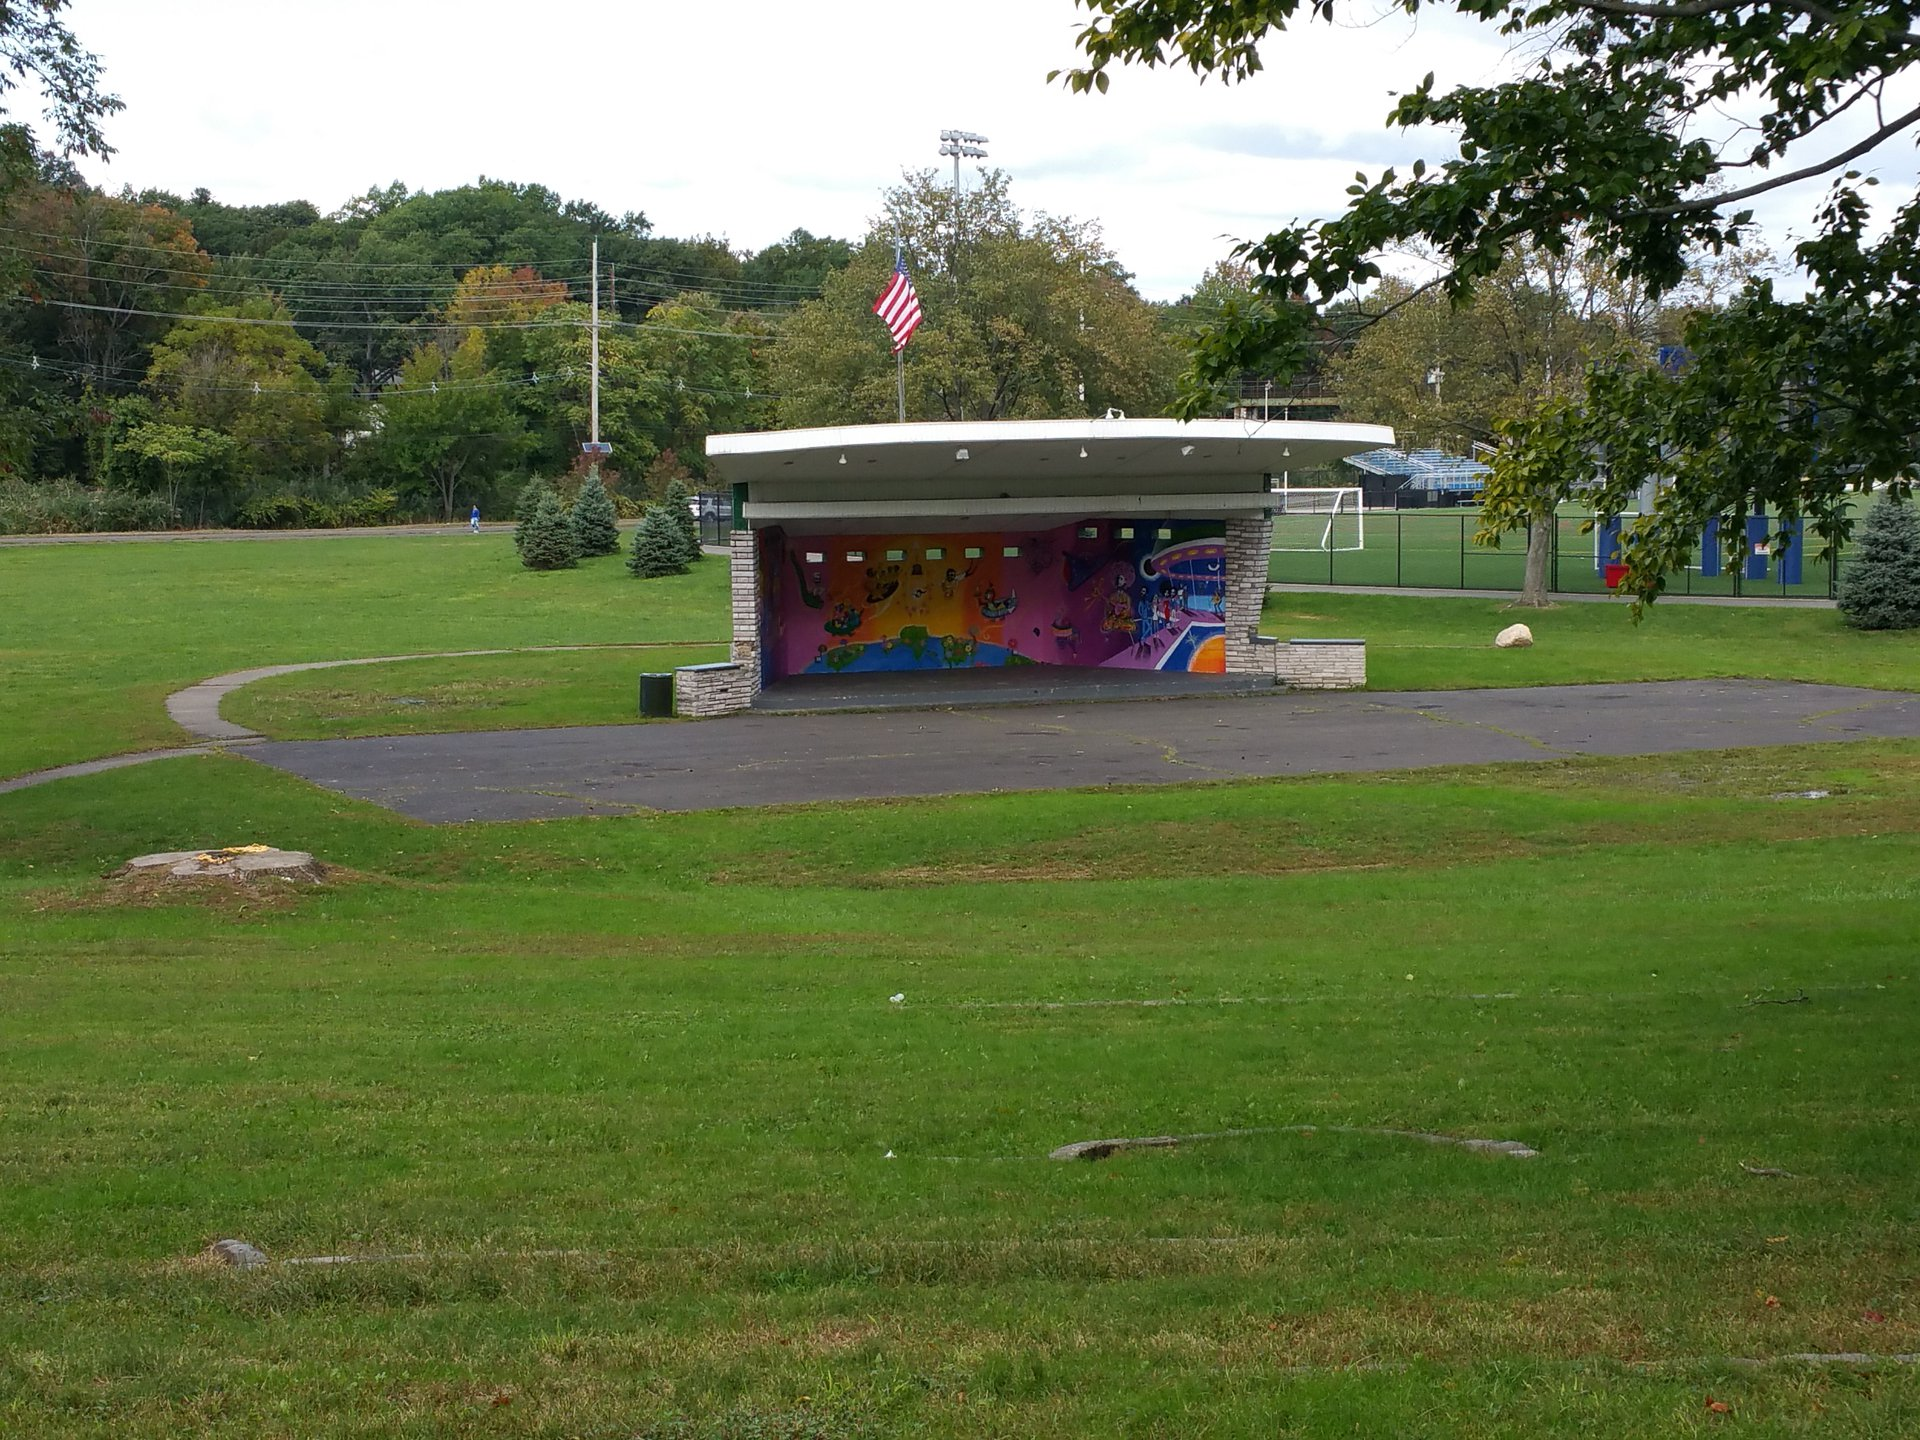 Township of Teaneck New Jersey - Home Page